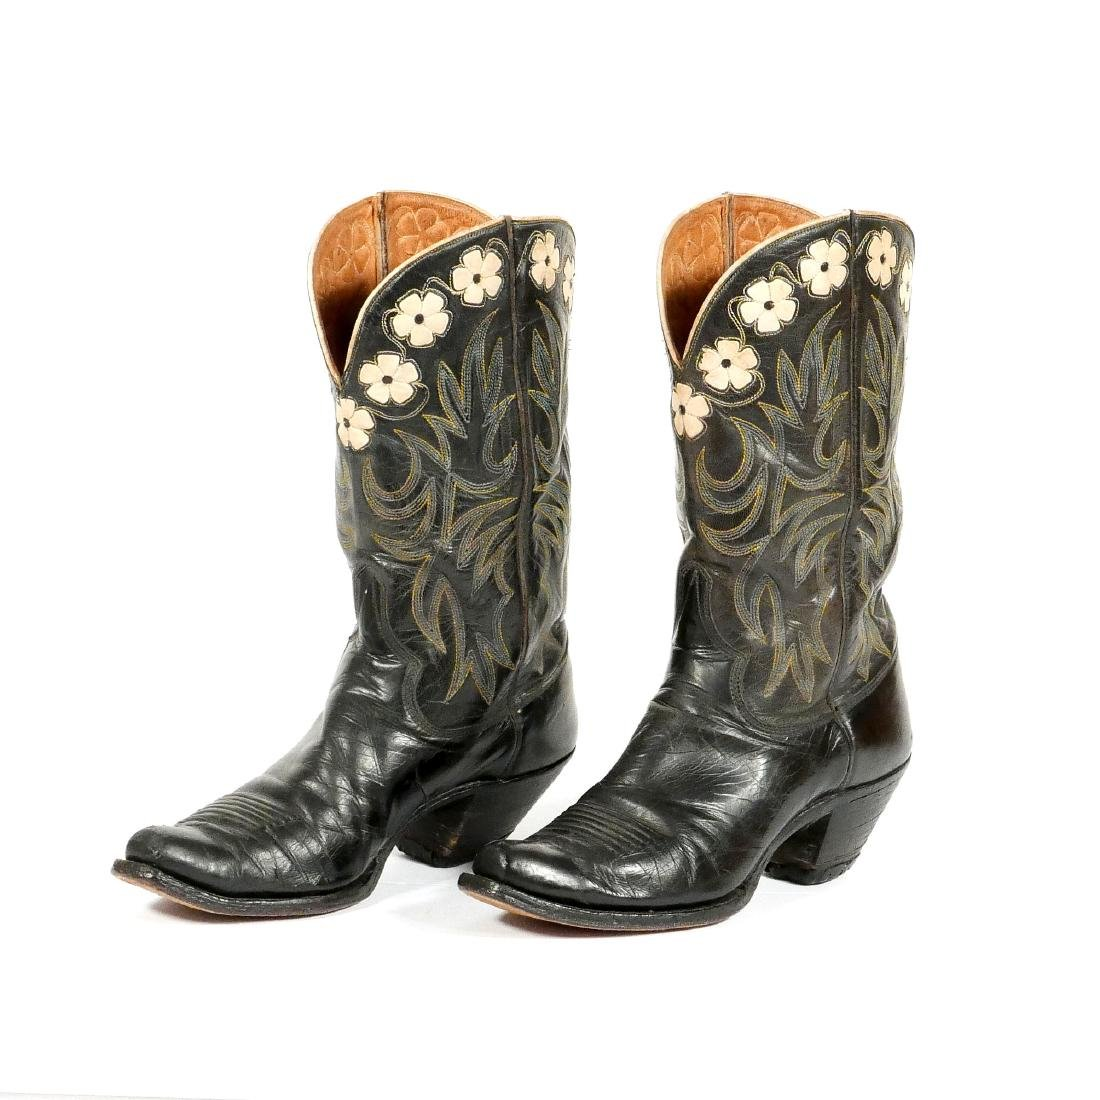 C.H. Hyer Benchmade Cowboy Boots - 3